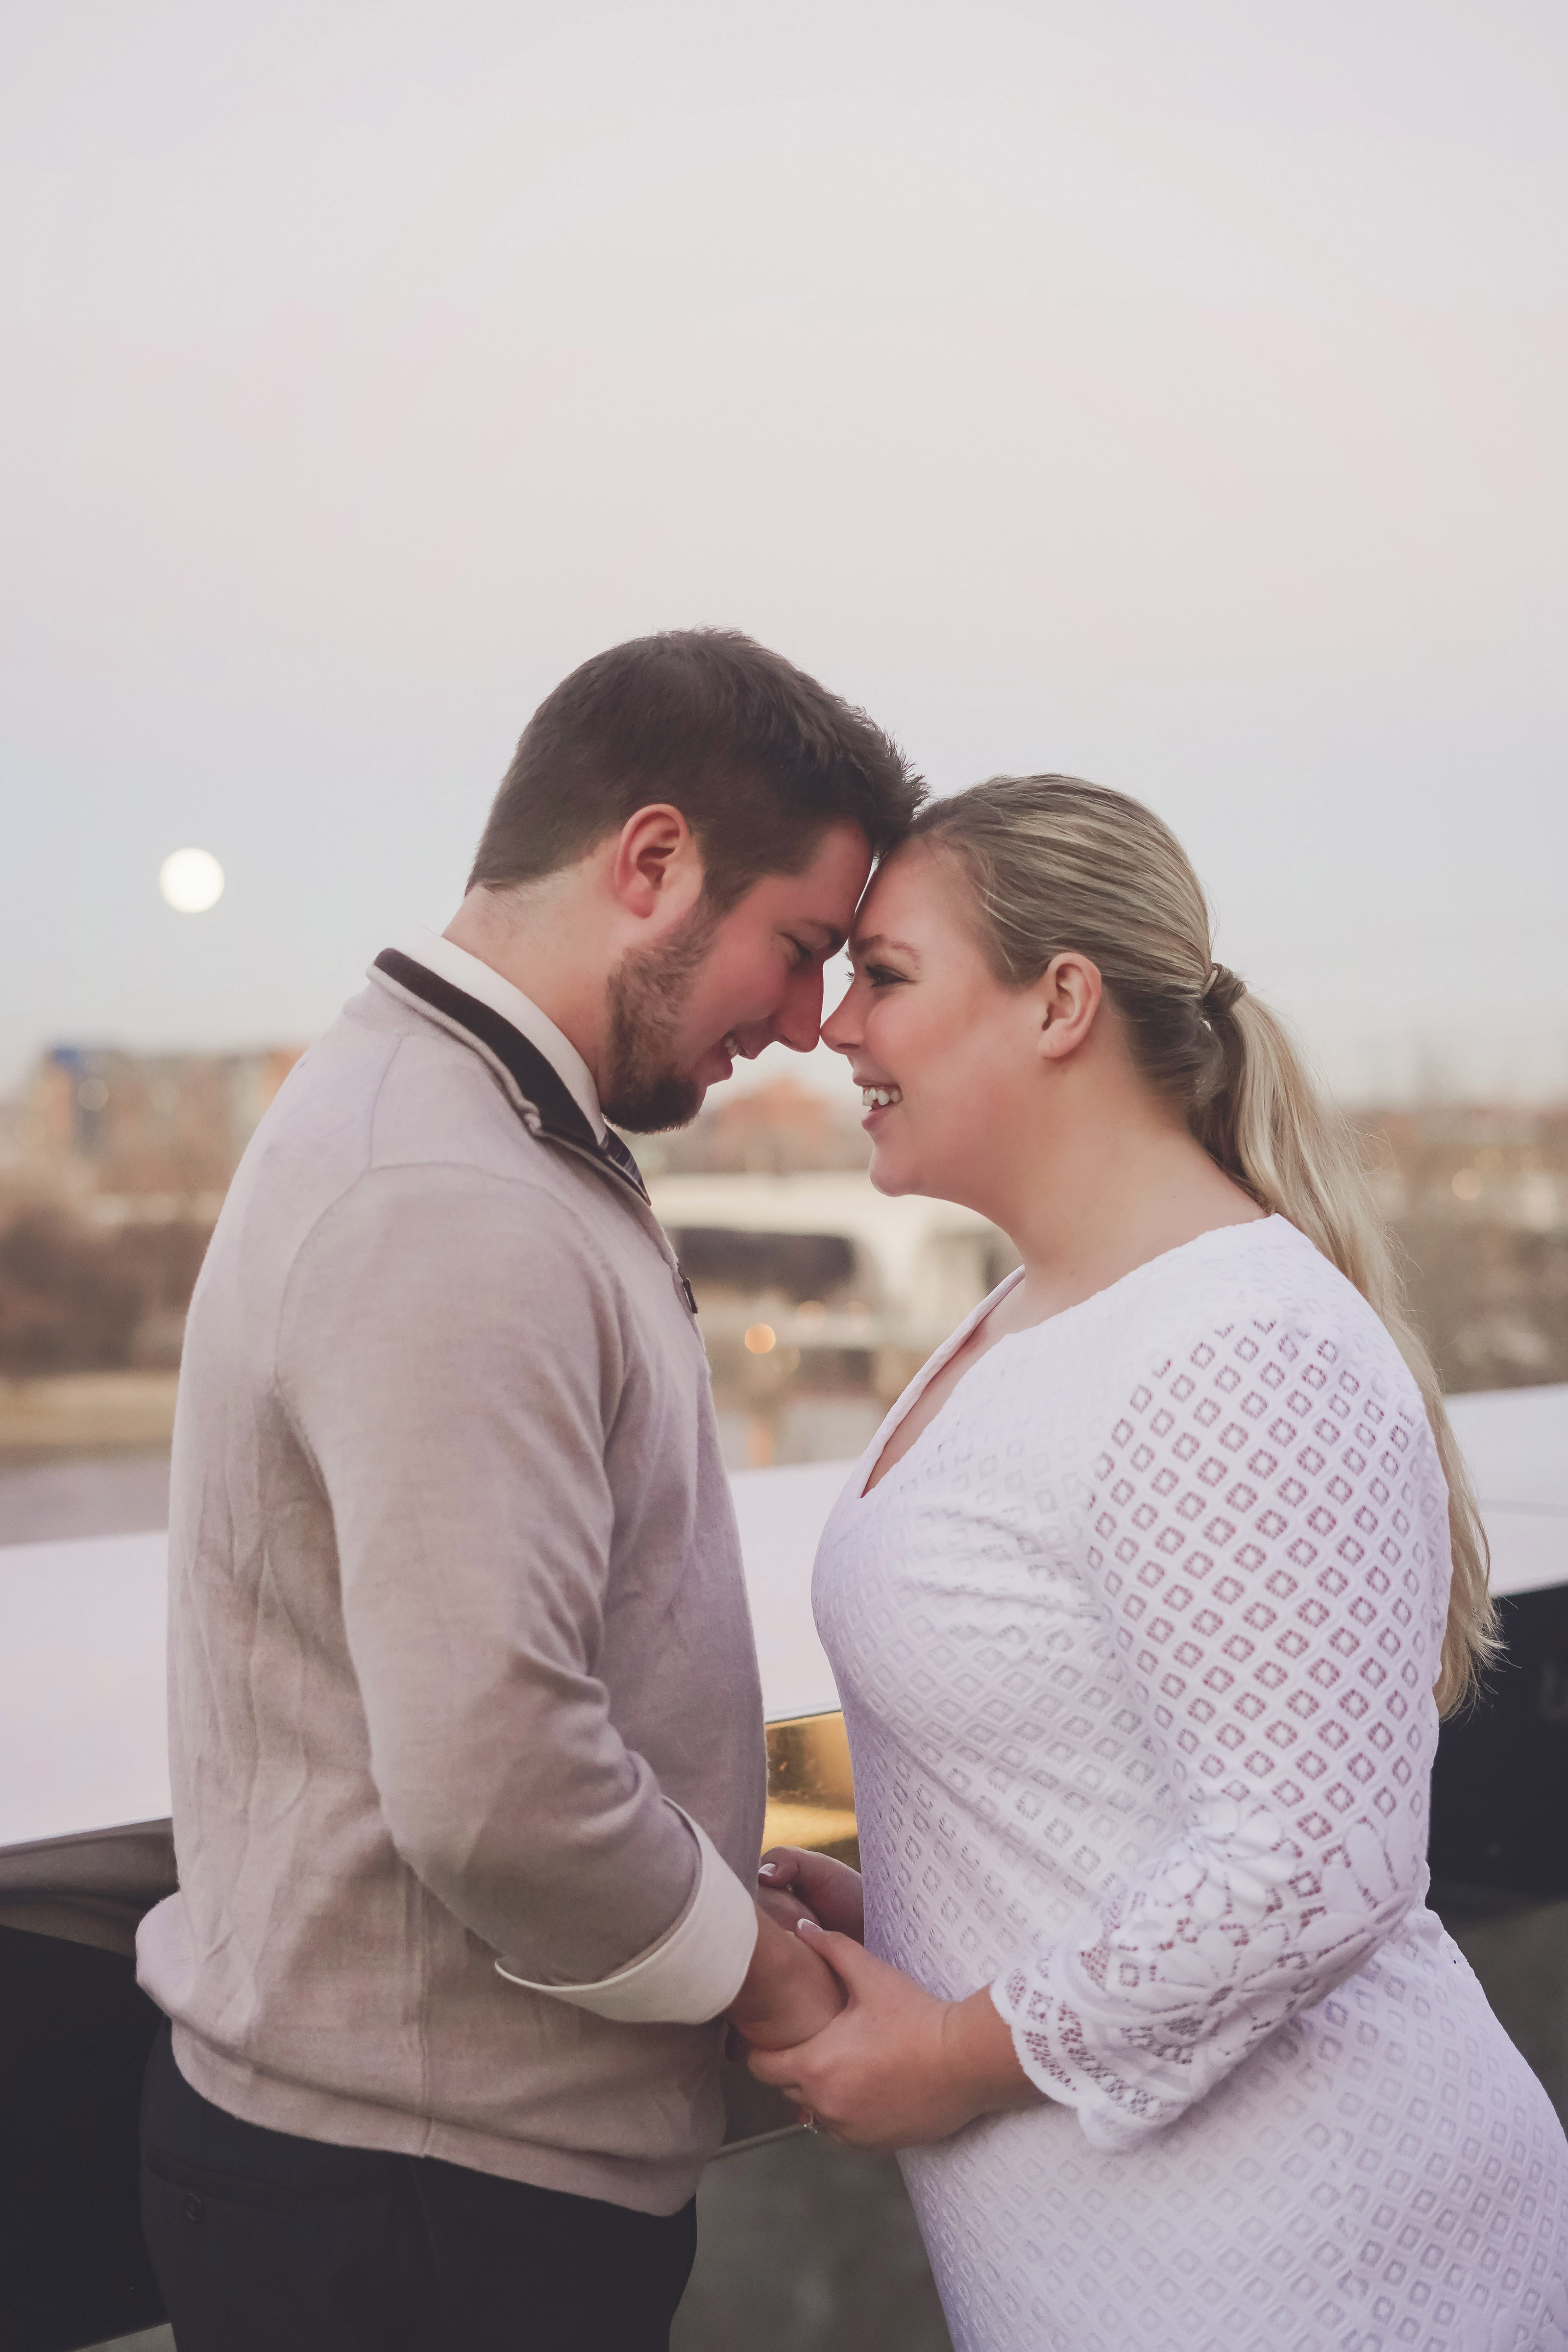 Engagement Proposal Ideas in Guthrie Theater